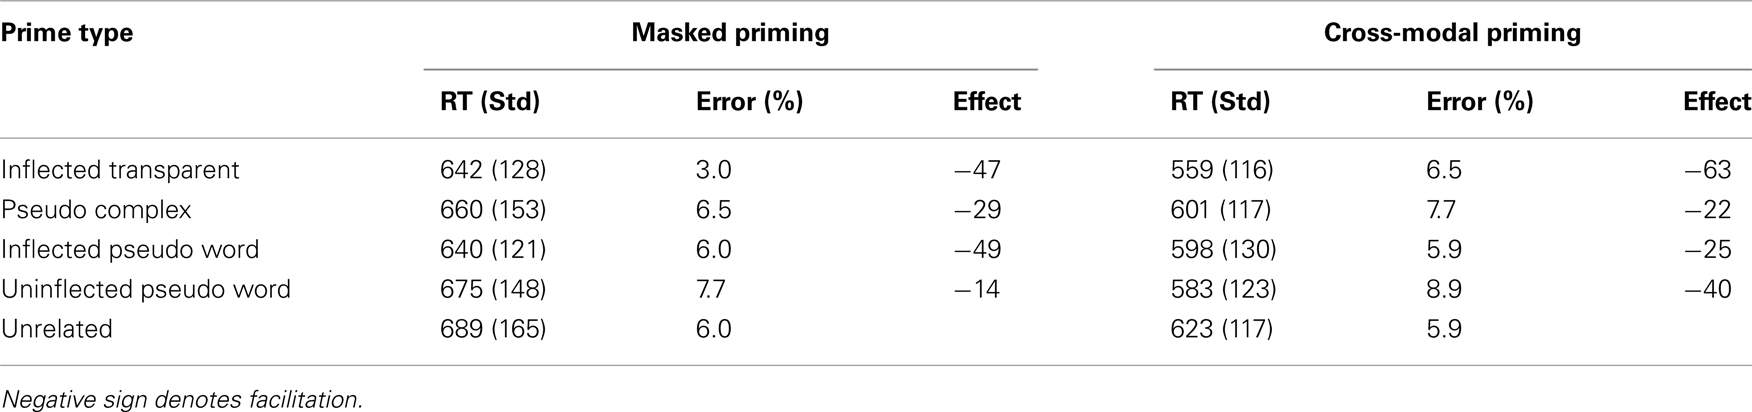 Impact of negative priming on reaction time